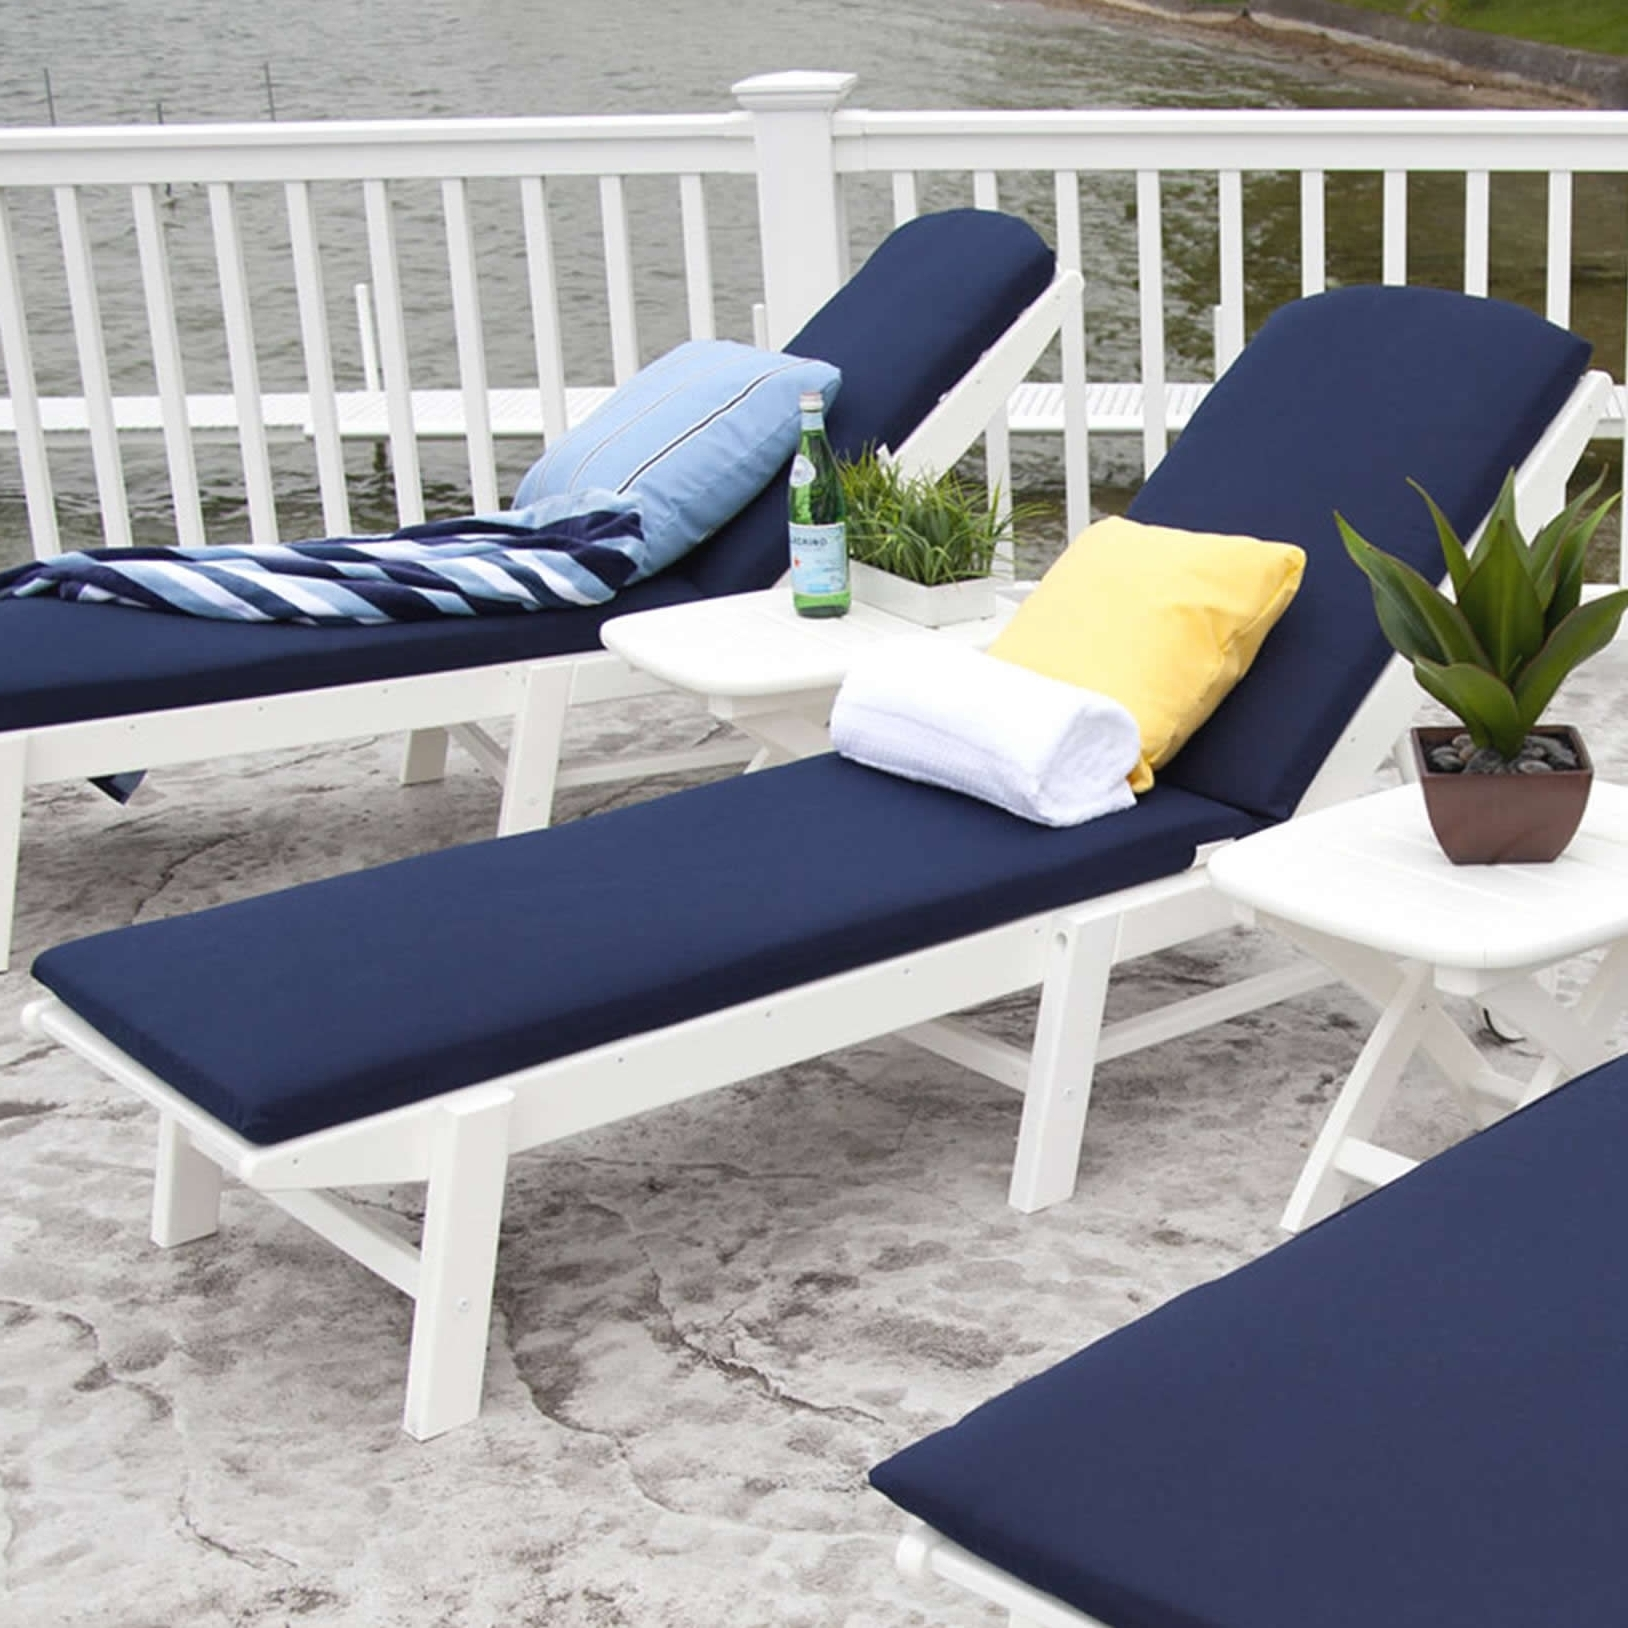 Chaise Lounge Chairs With Cushions Throughout 2017 Polywood Nautical Chaise Lounge Cushions (View 7 of 15)